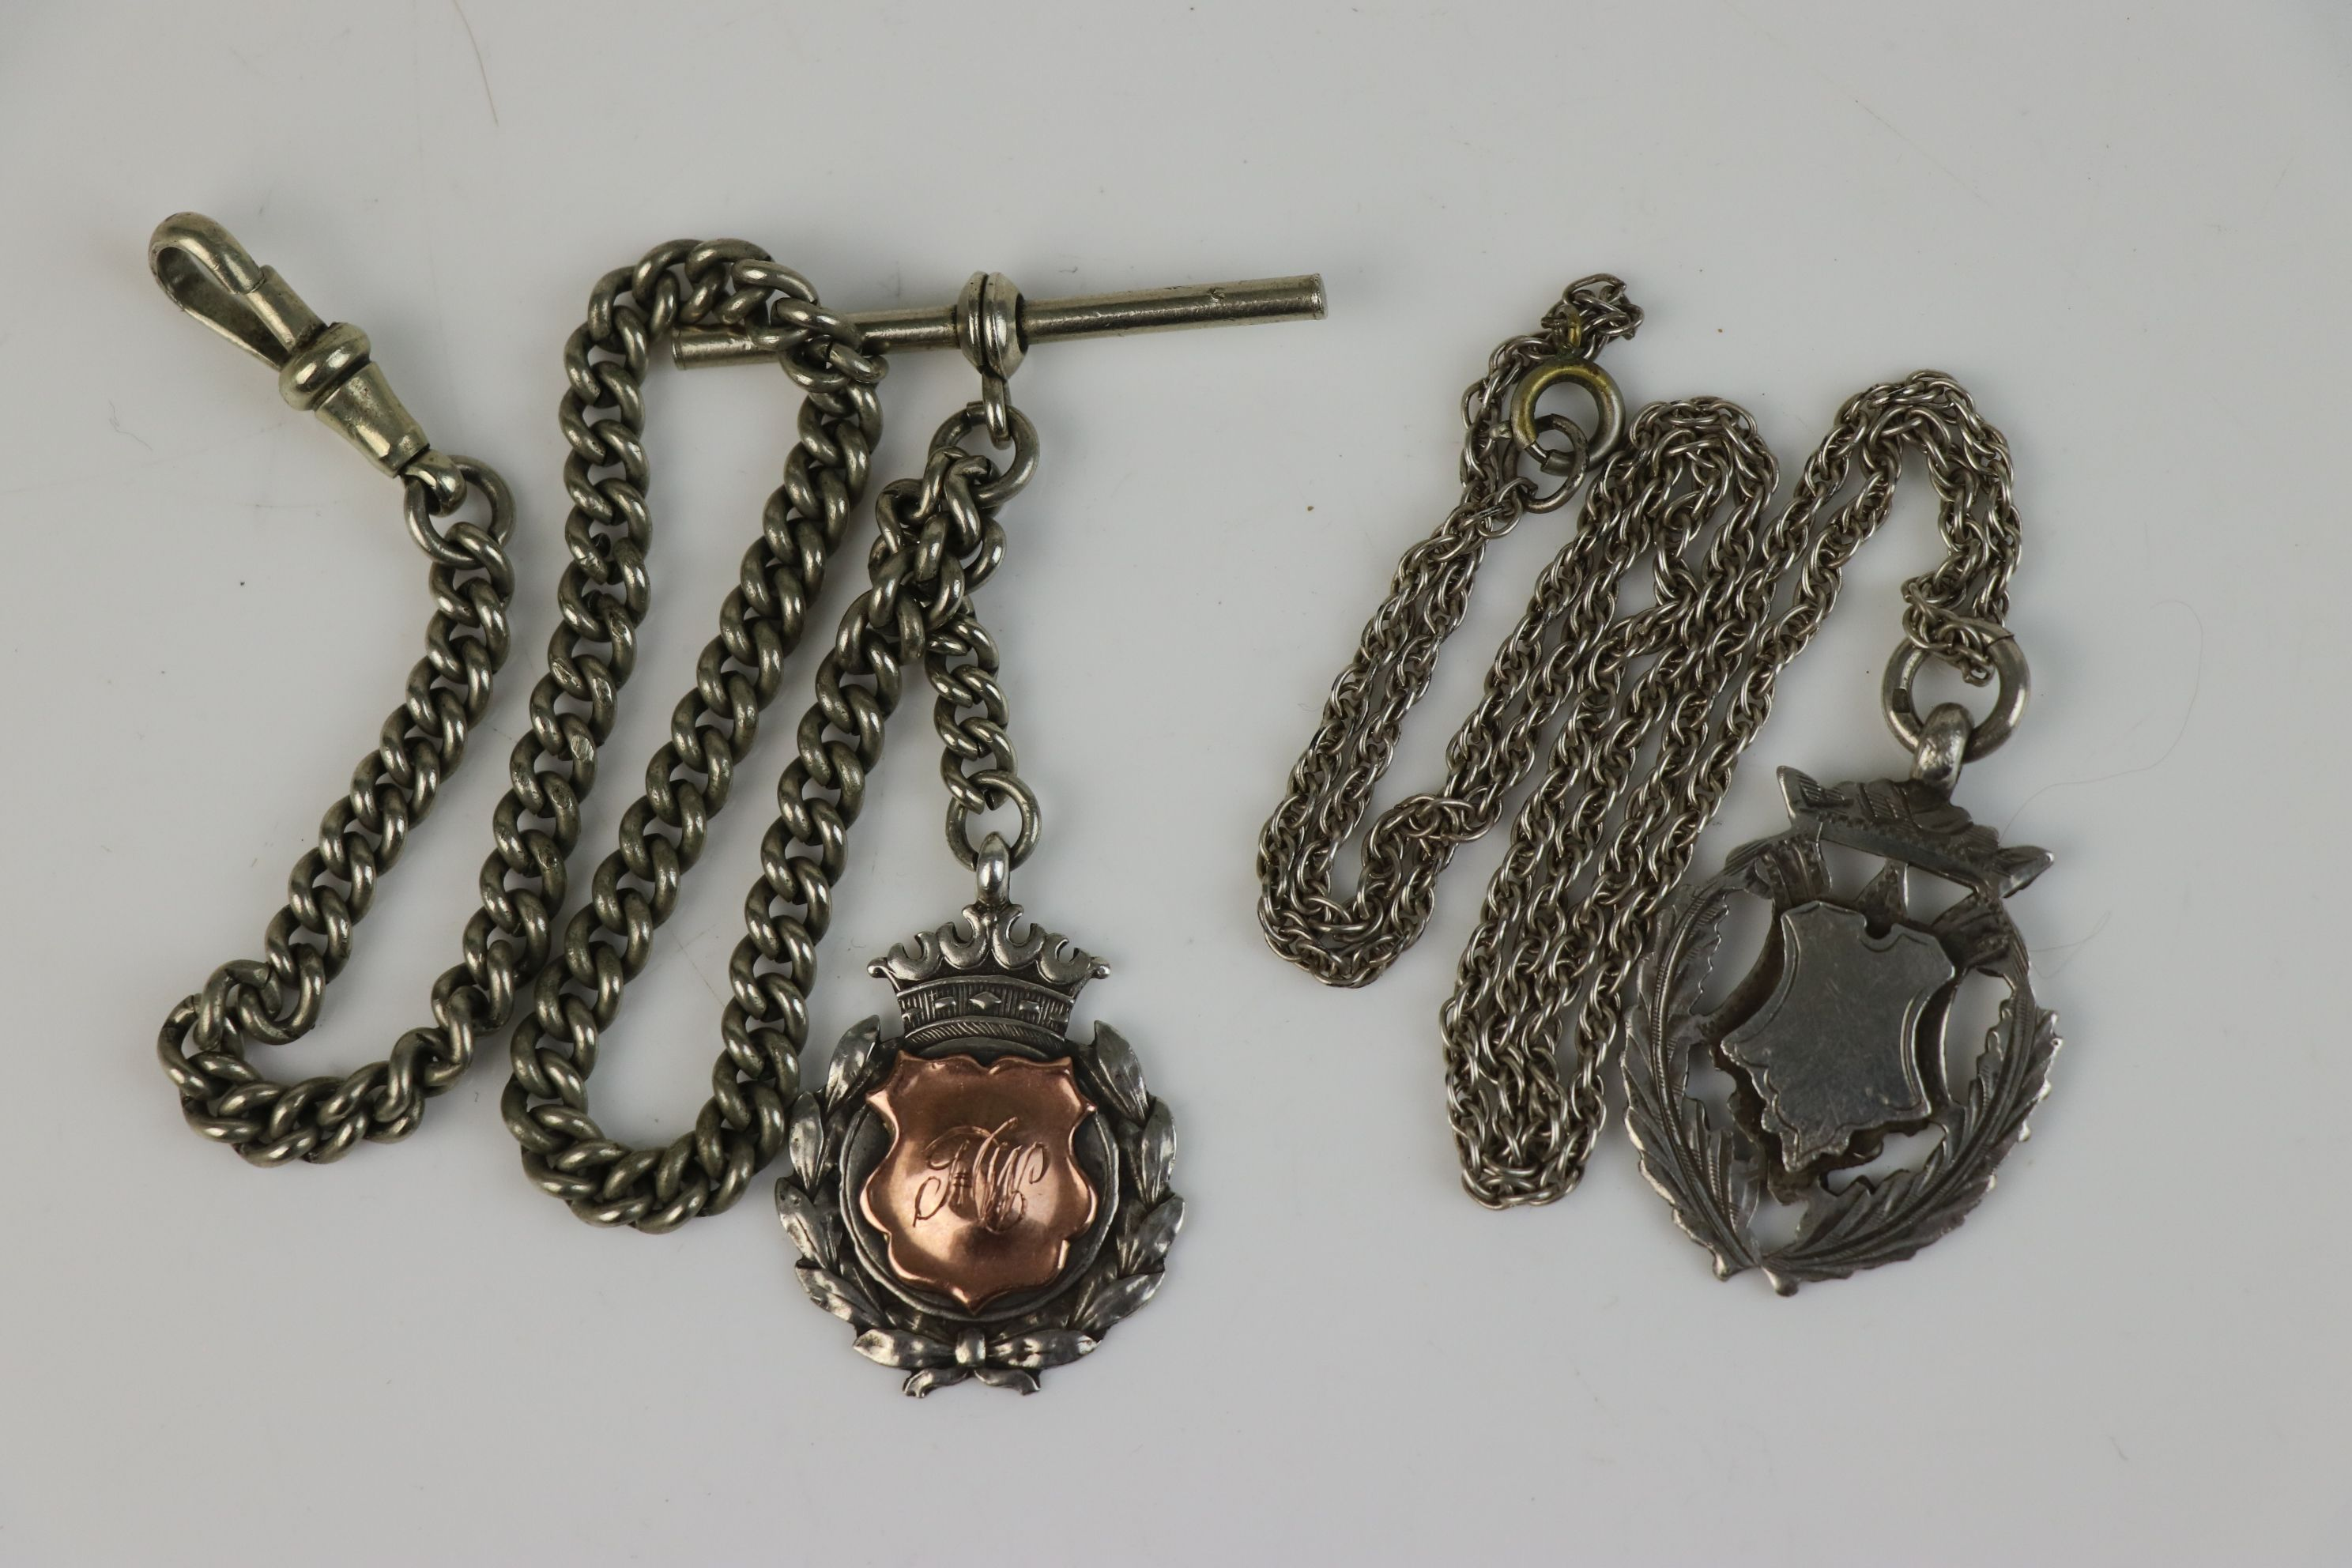 Two fully hallmarked sterling silver watch fob medallions together with an Albert chain. - Image 2 of 5